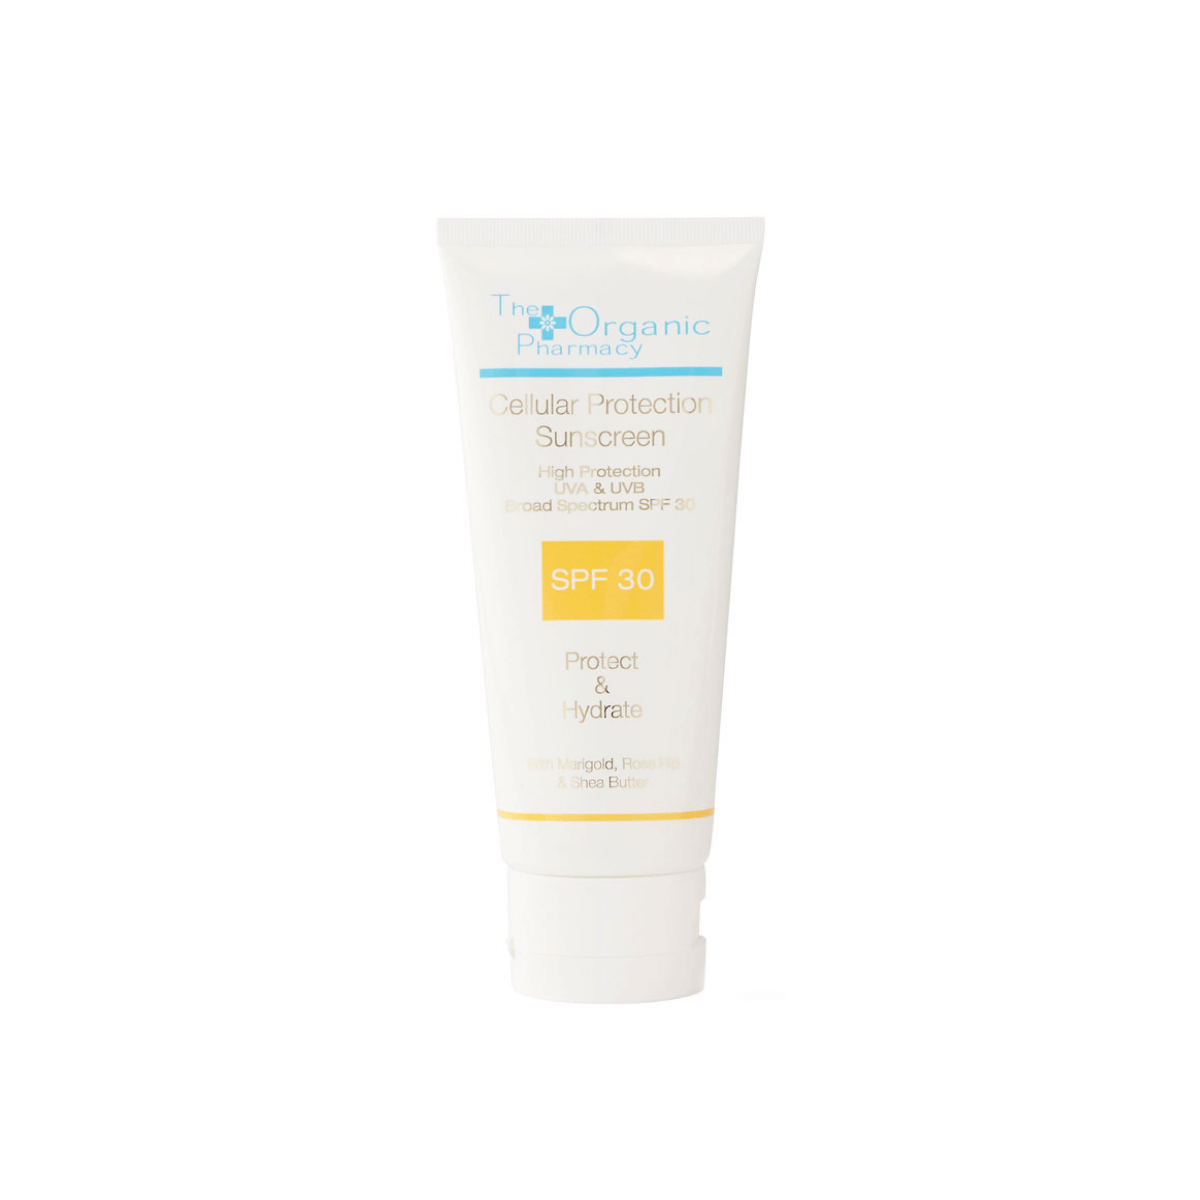 The Organic Pharmacy Cellular Protection Sun Cream SPF 30